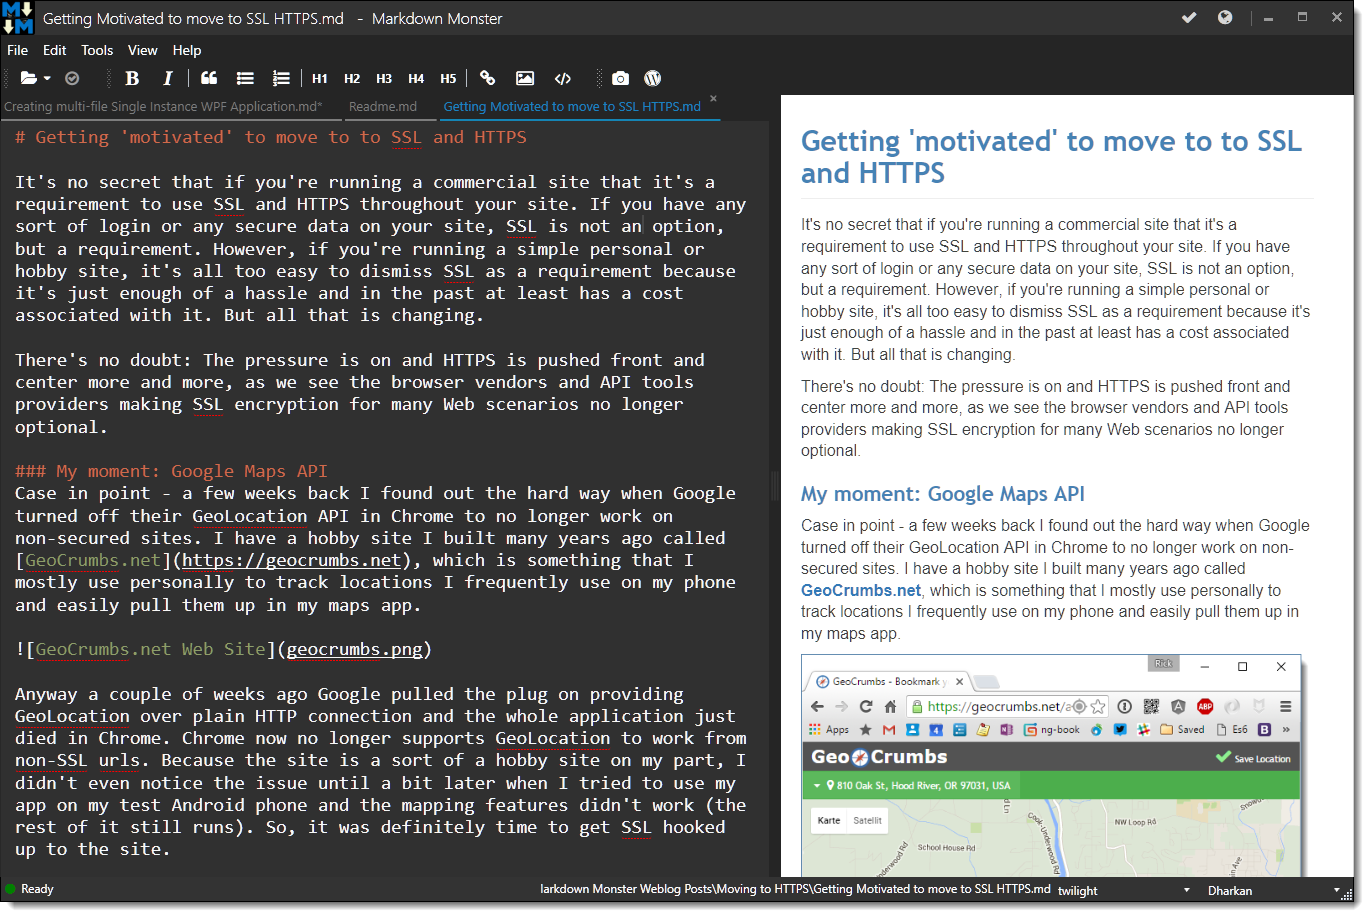 Markdown Monster Screenshot